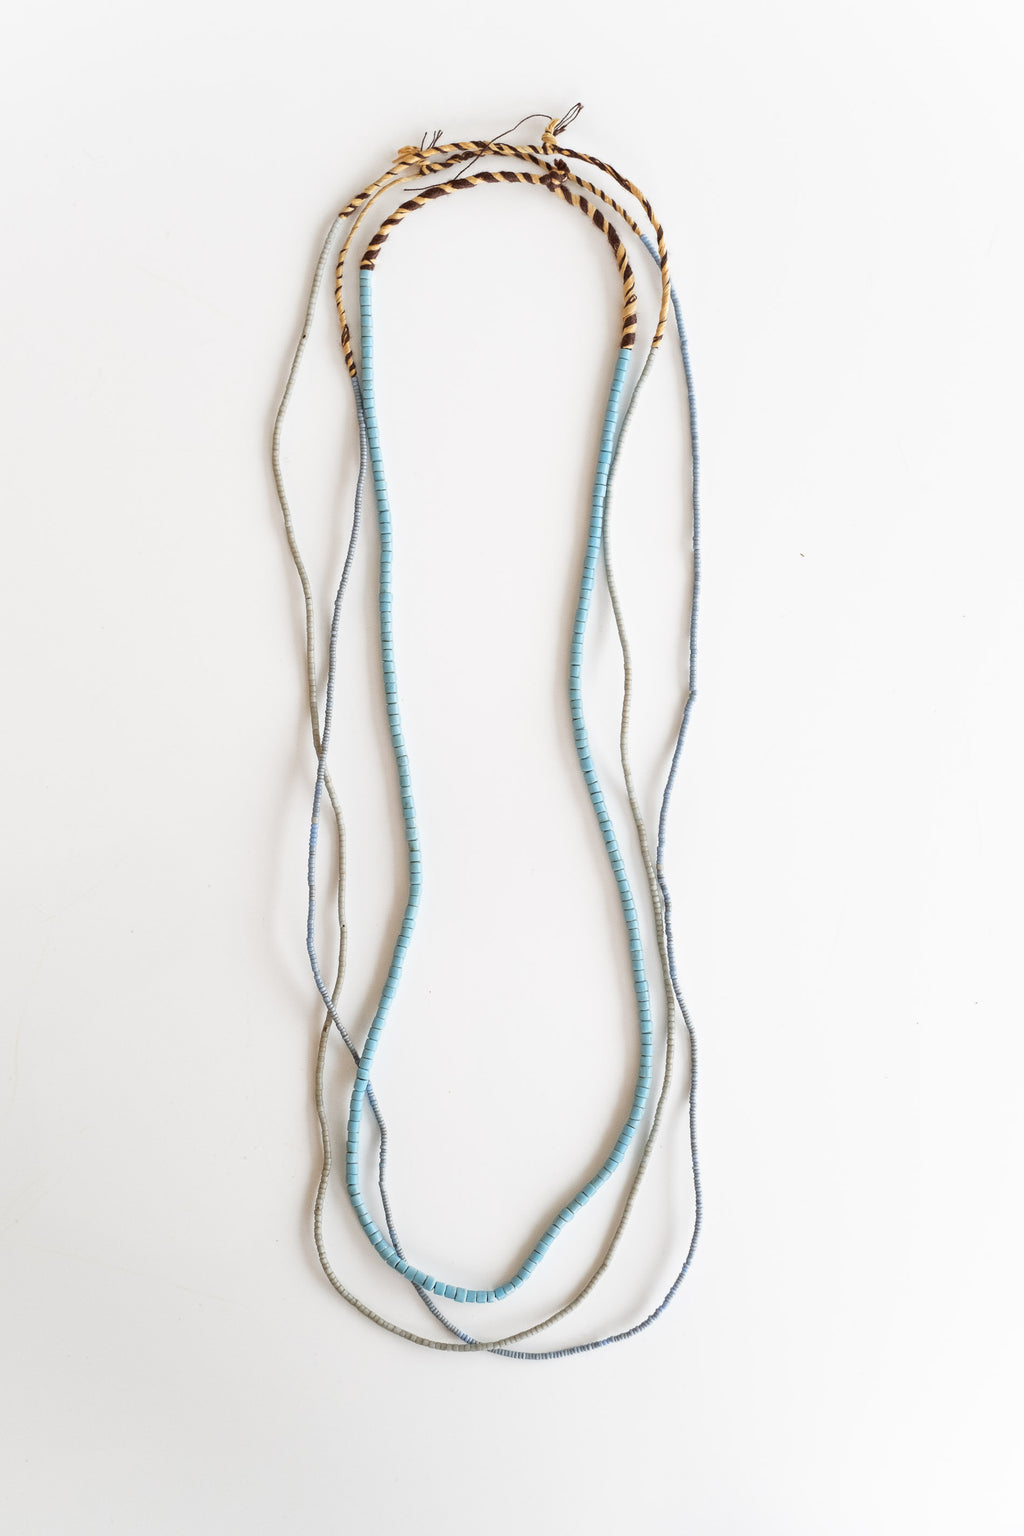 3-STRAND AFRICAN BEADS NO. 1